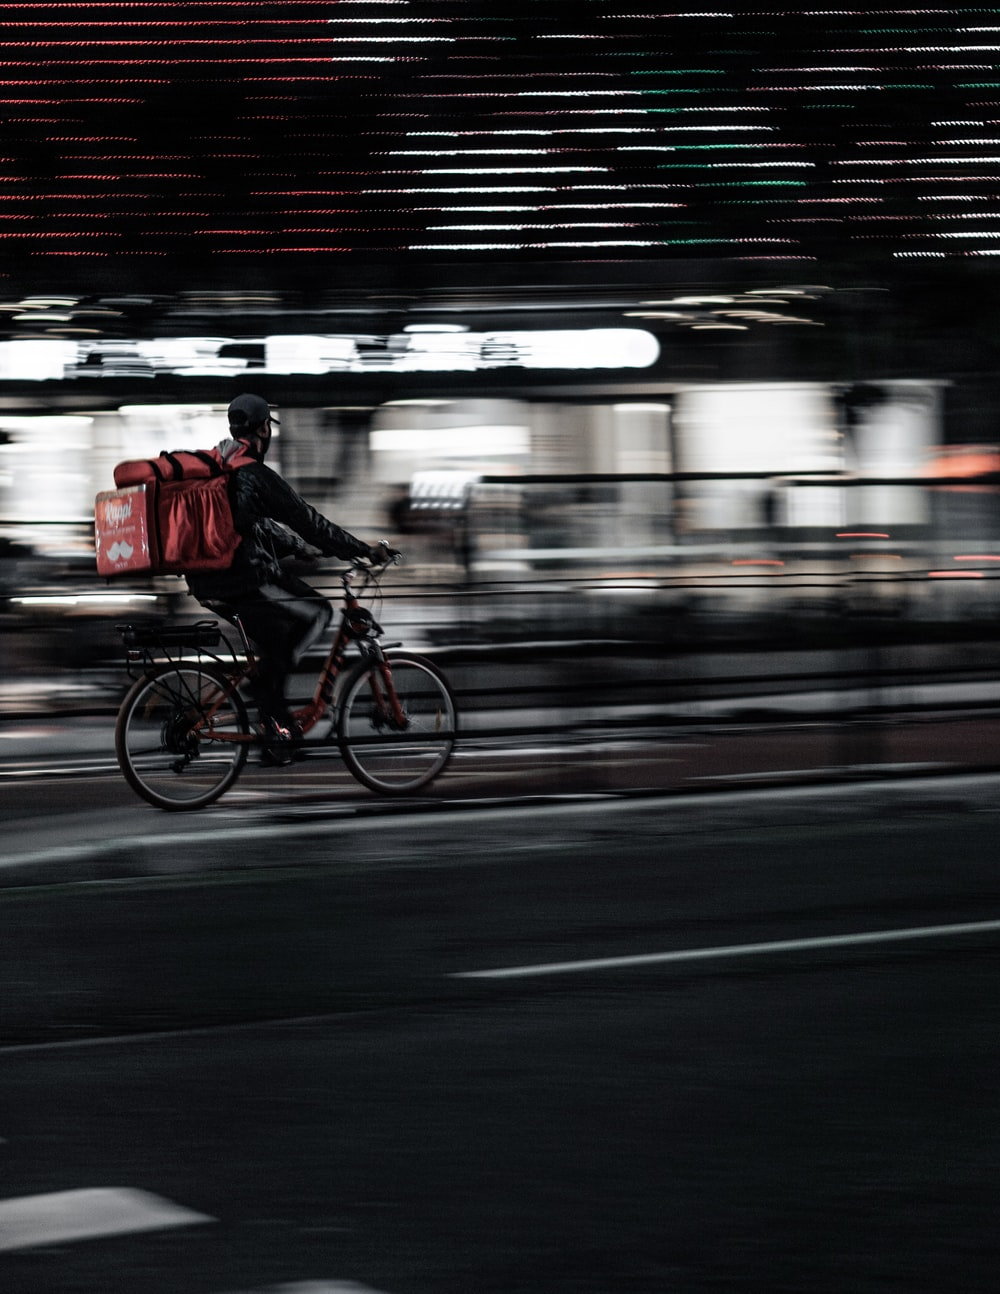 man in red jacket riding bicycle in the city